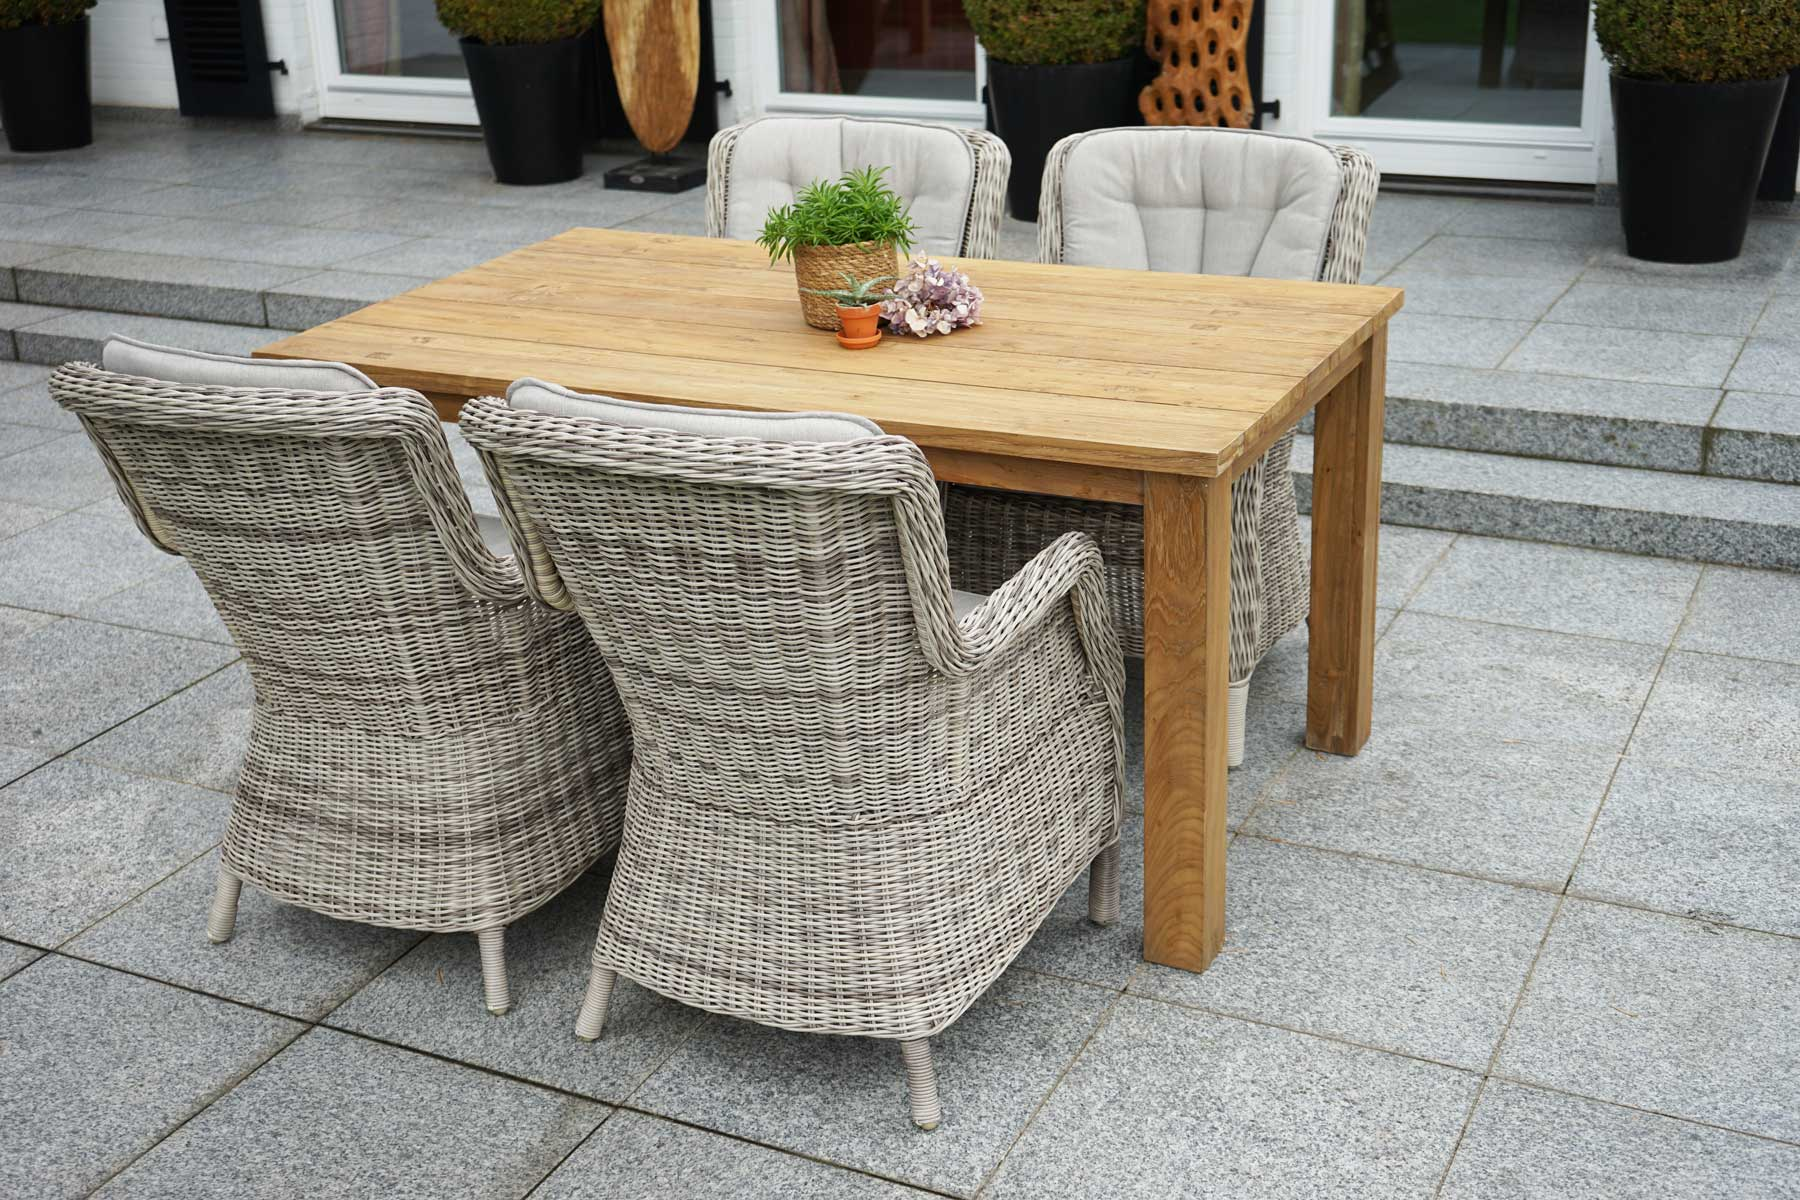 gartenm bel diningset 5 tlg sahara picton set angebote gartenm bel gardanio ihr online. Black Bedroom Furniture Sets. Home Design Ideas